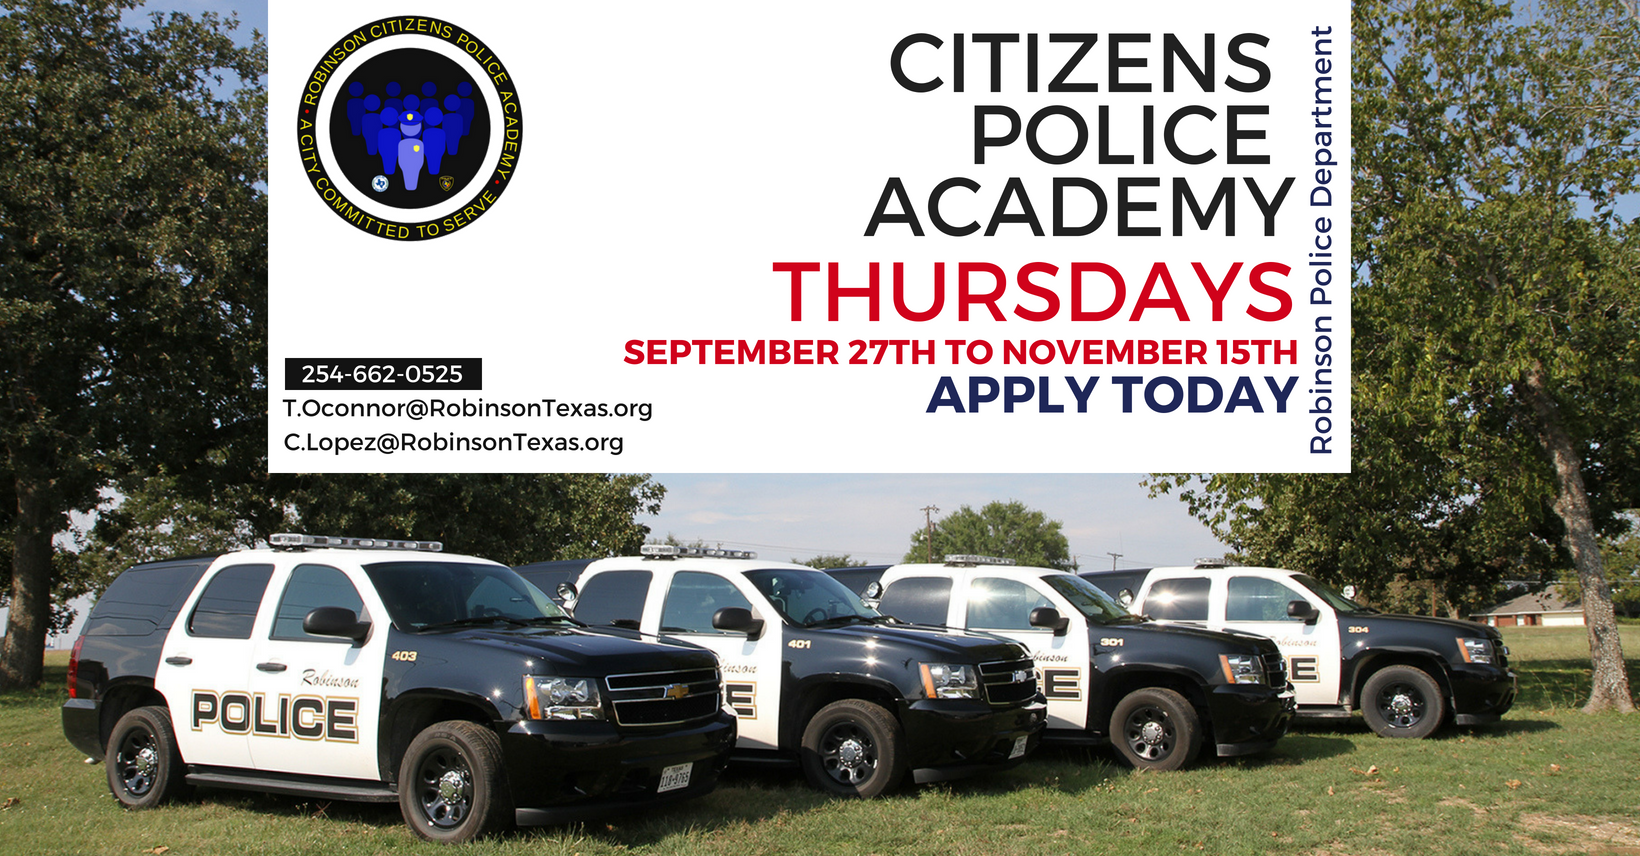 Citizens Police Academy Website Banner Fall 2018